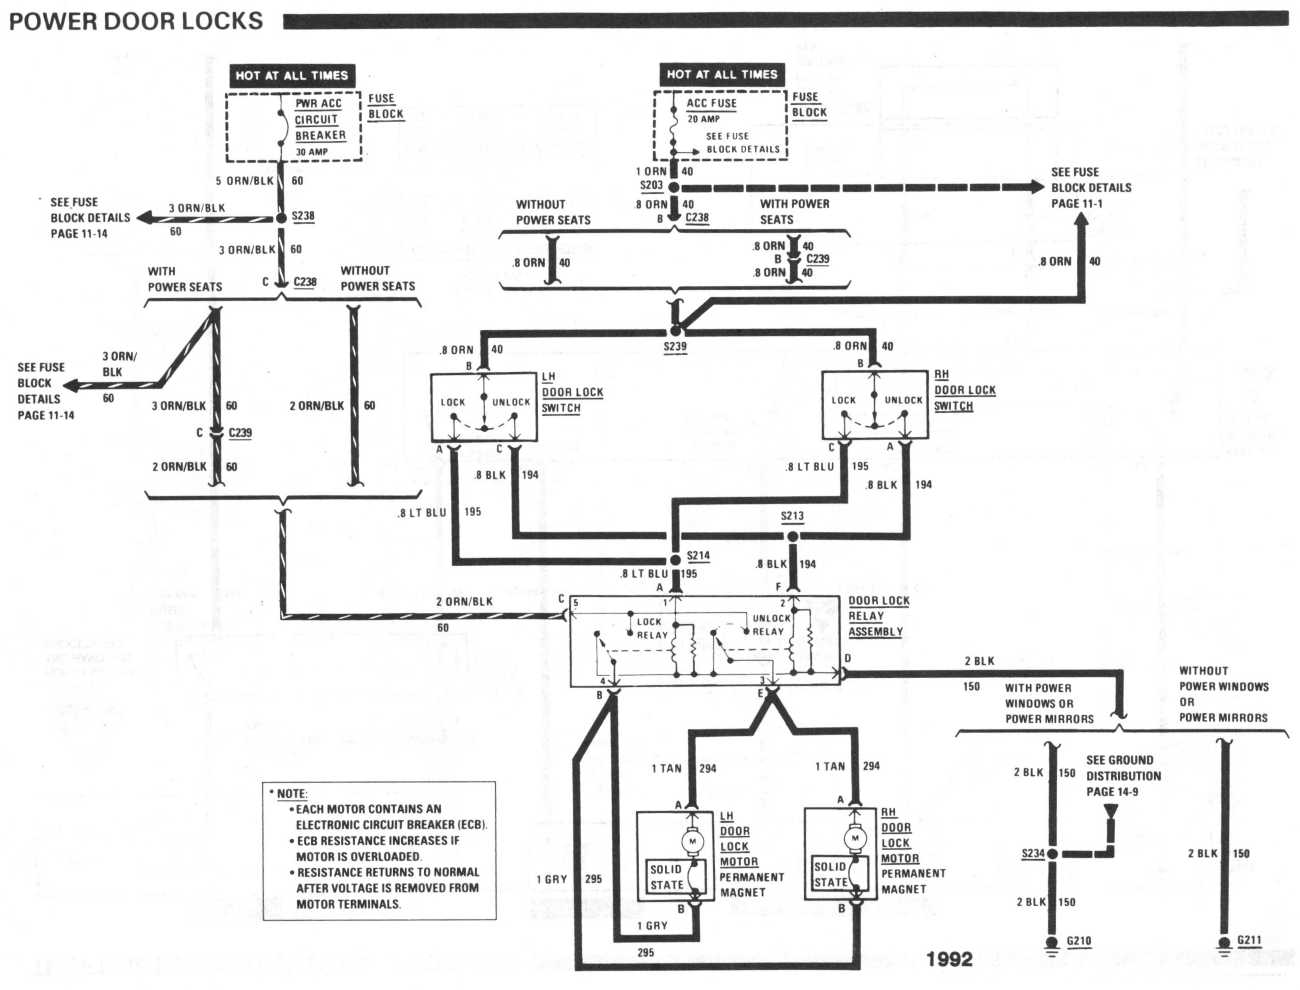 Daihatsu Hijet Wiring Diagram Trusted Diagrams Move 2001 F150 Power Door Lock 40 Pdf